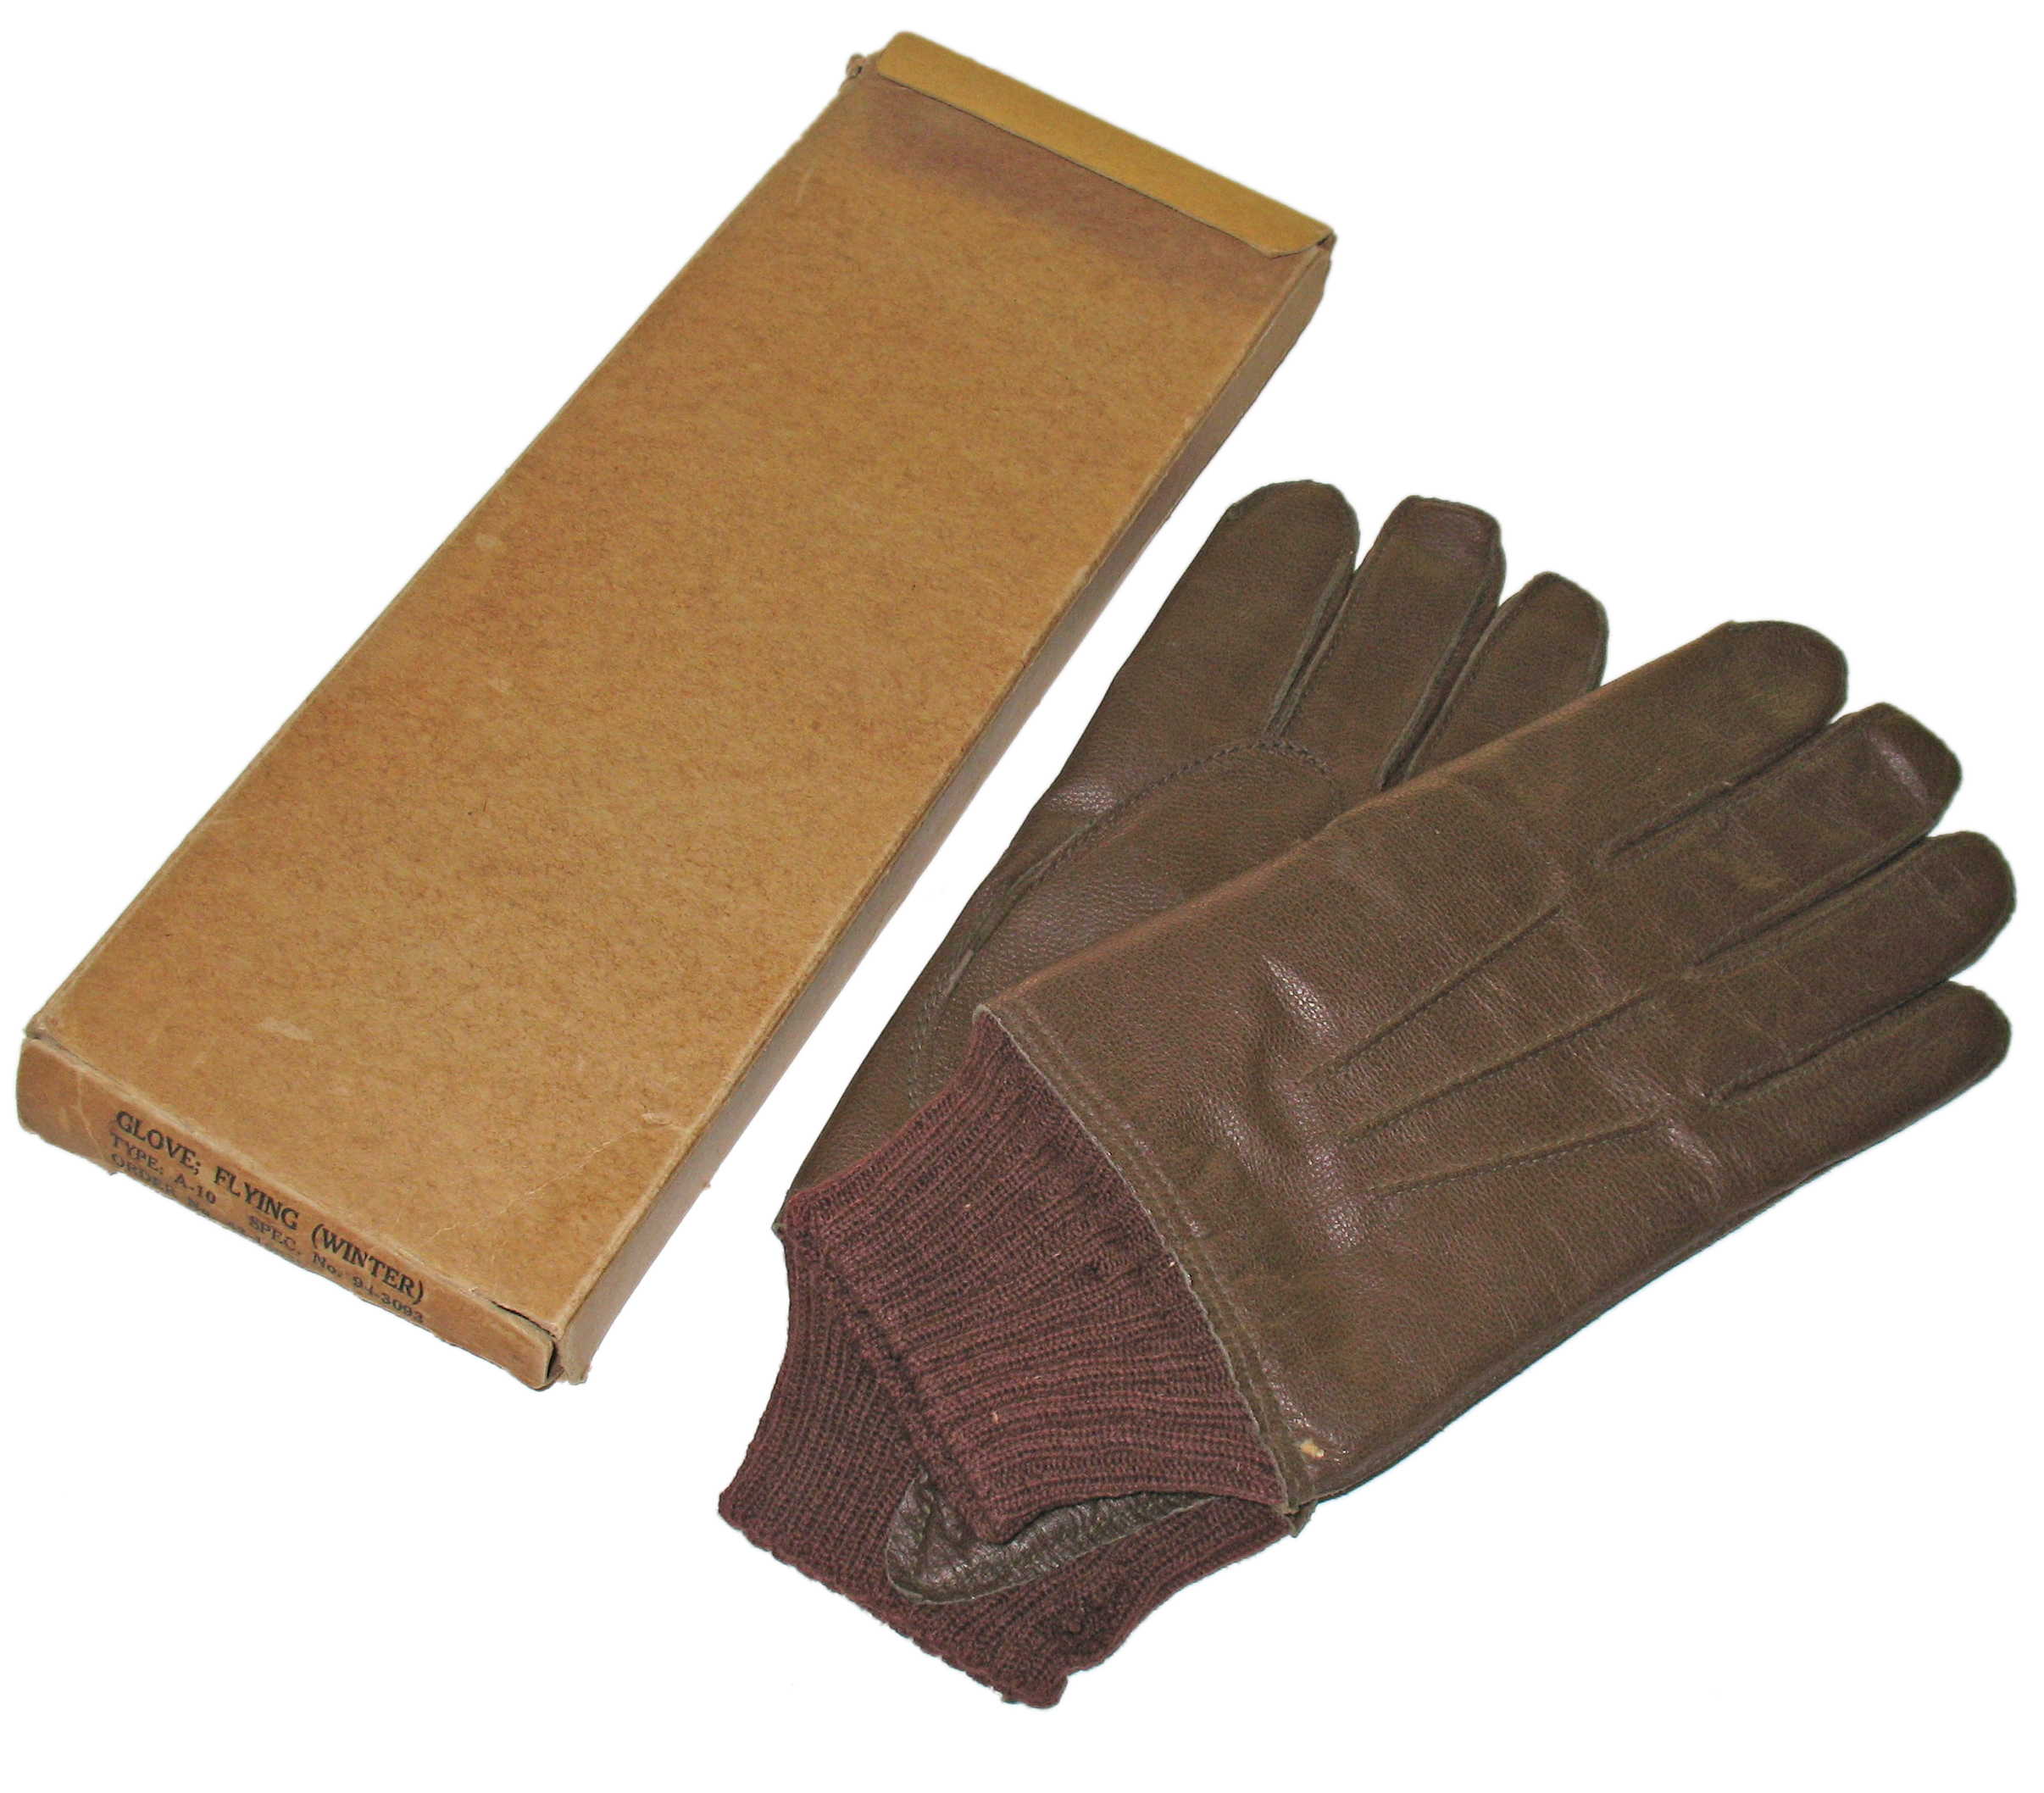 AAF A-10 gloves unused original box